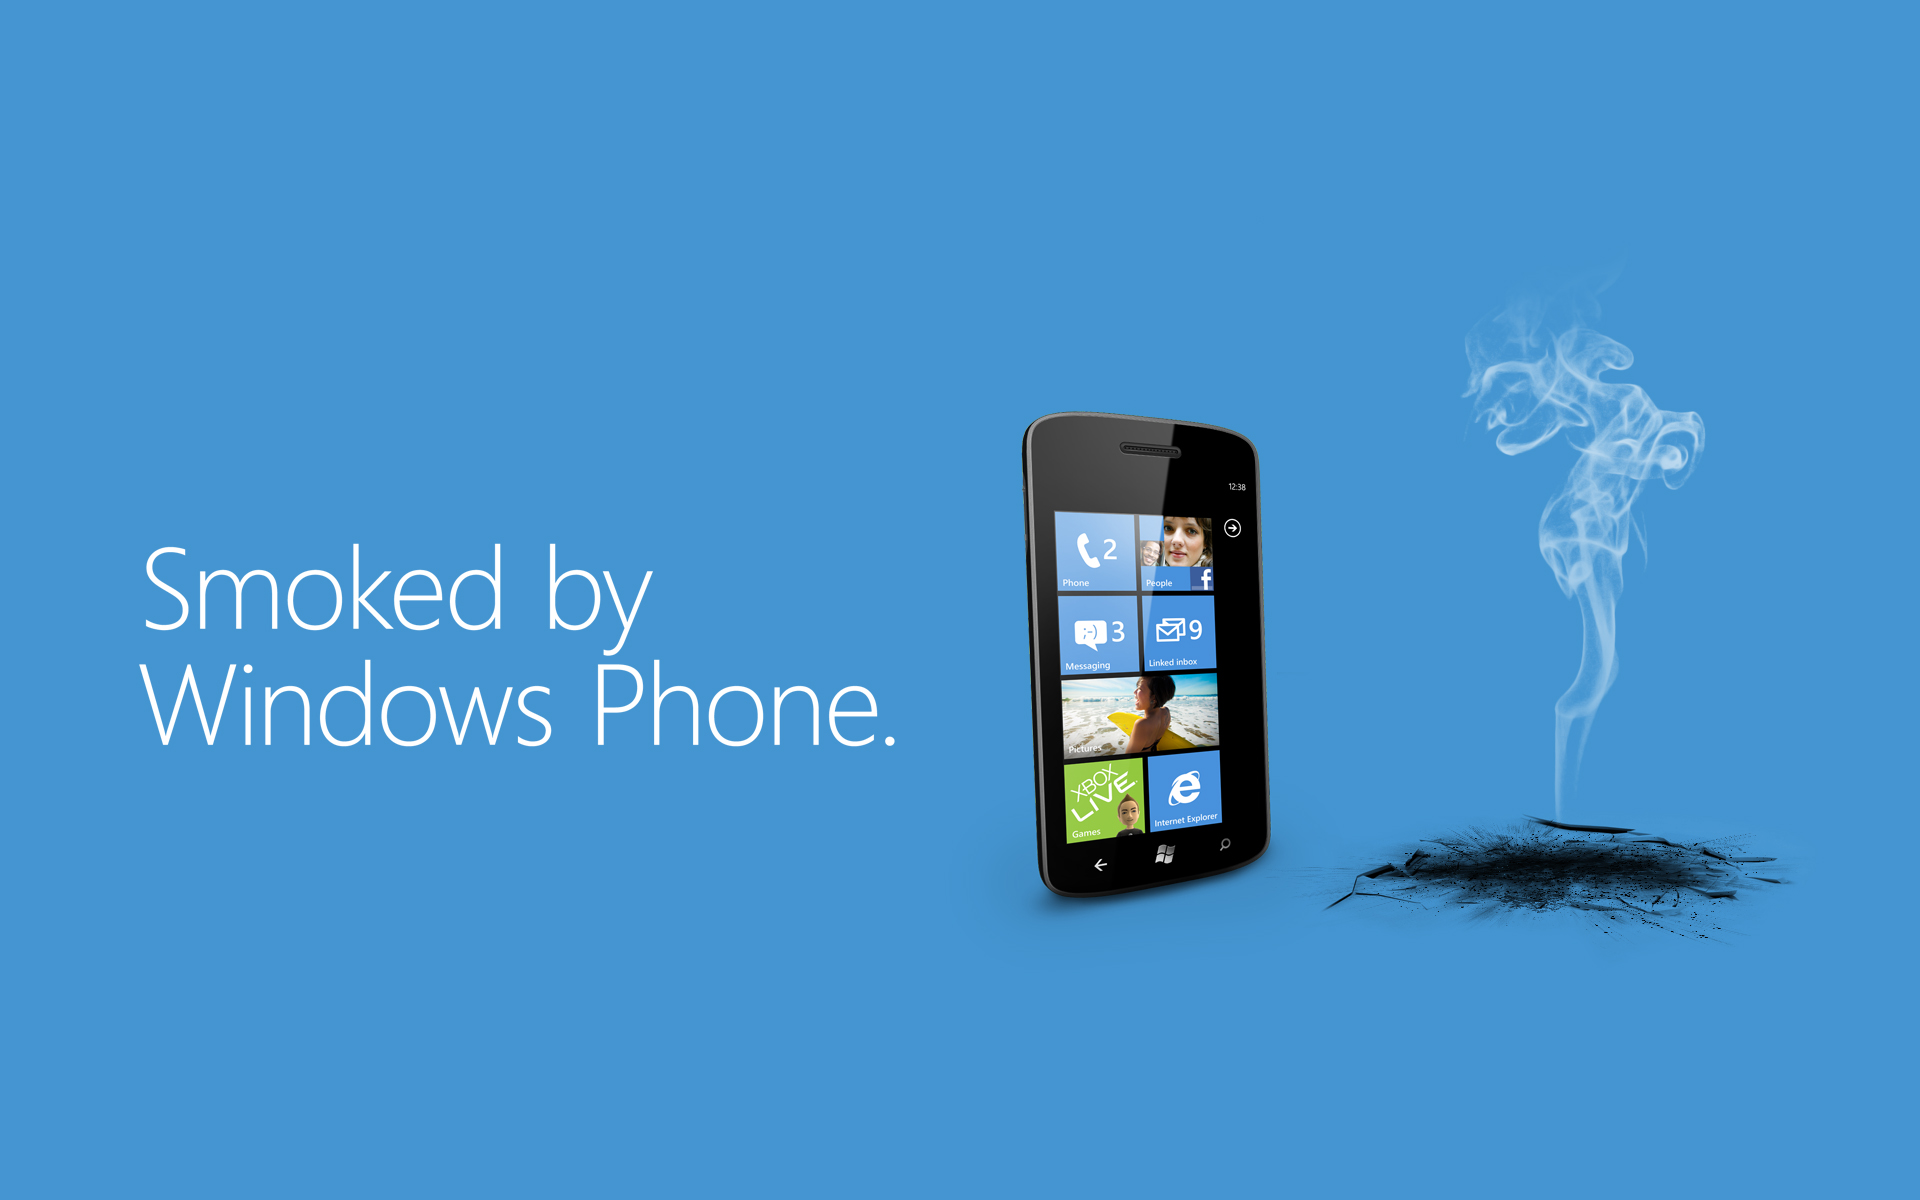 Microsoft Expanding 'Smoked by Windows Phone' to Advertisements ...